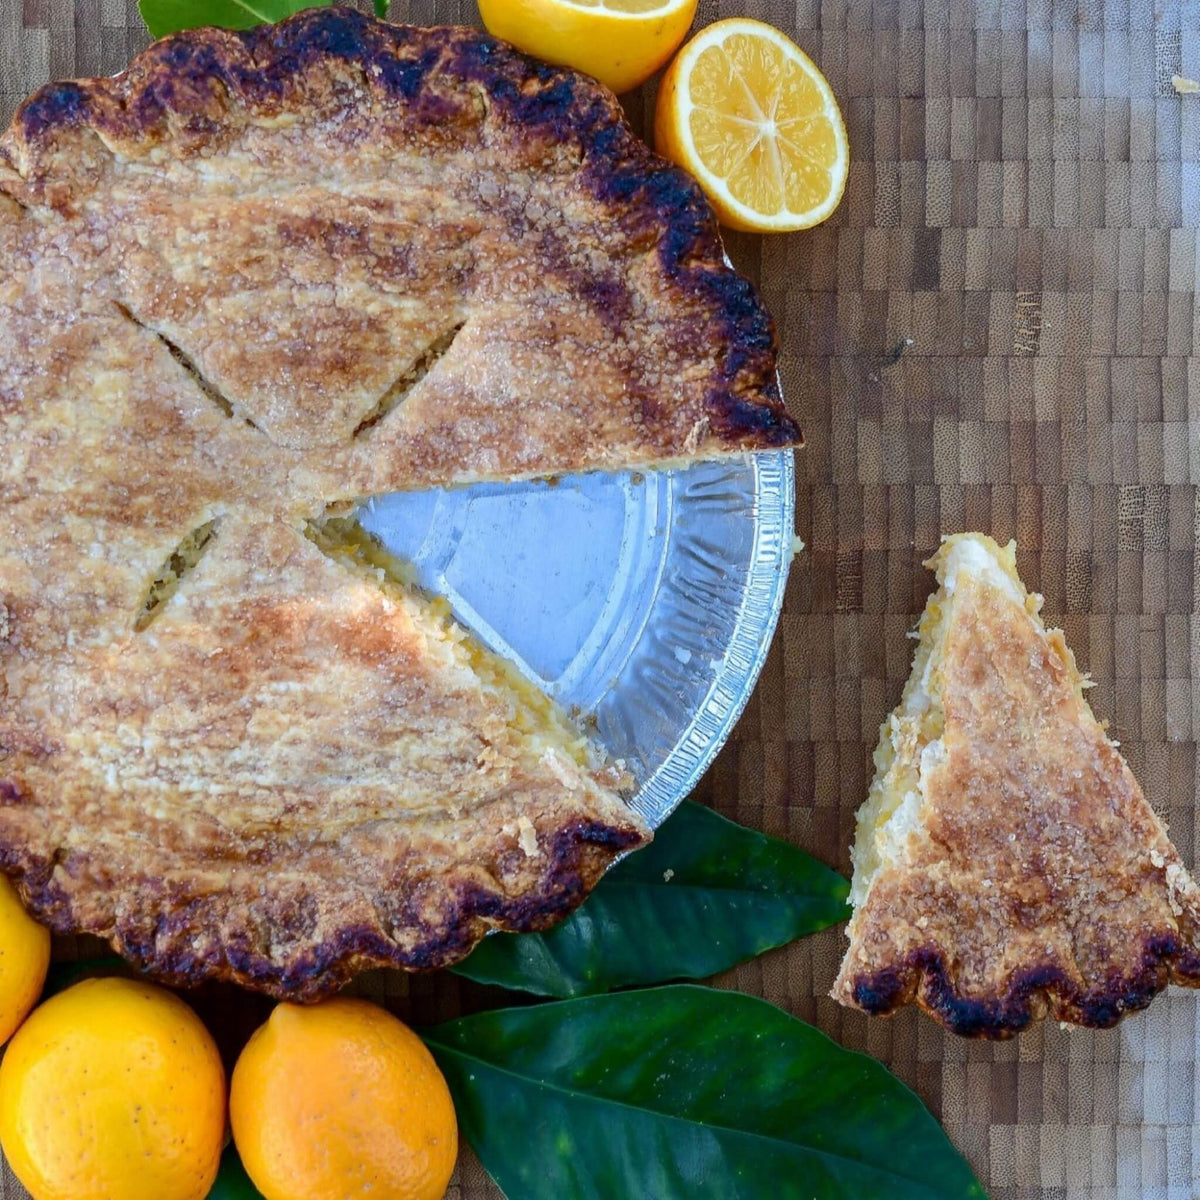 Shaker Meyer Lemon Pie